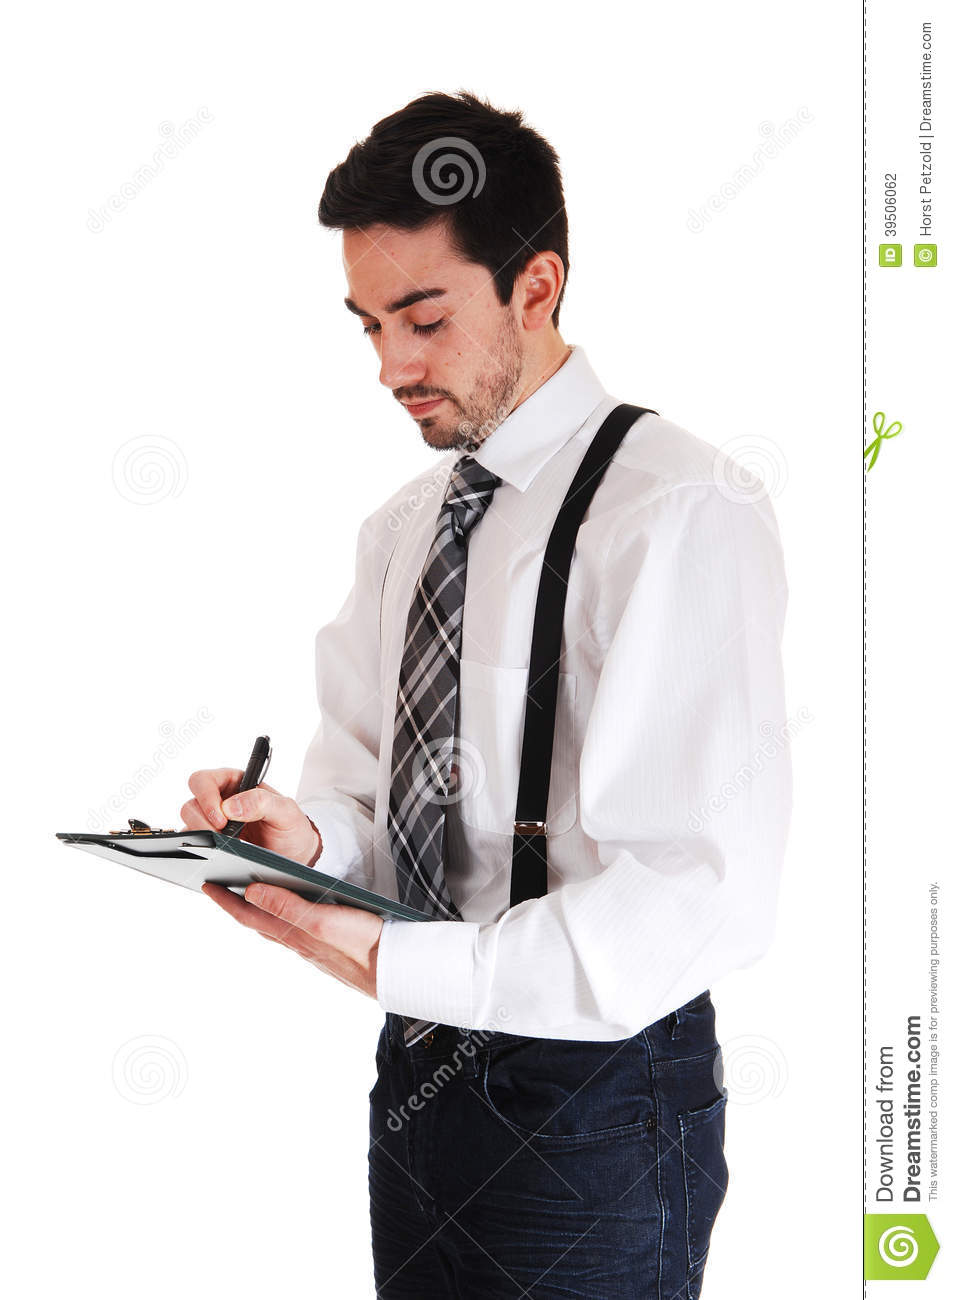 Man writing on clipboard.